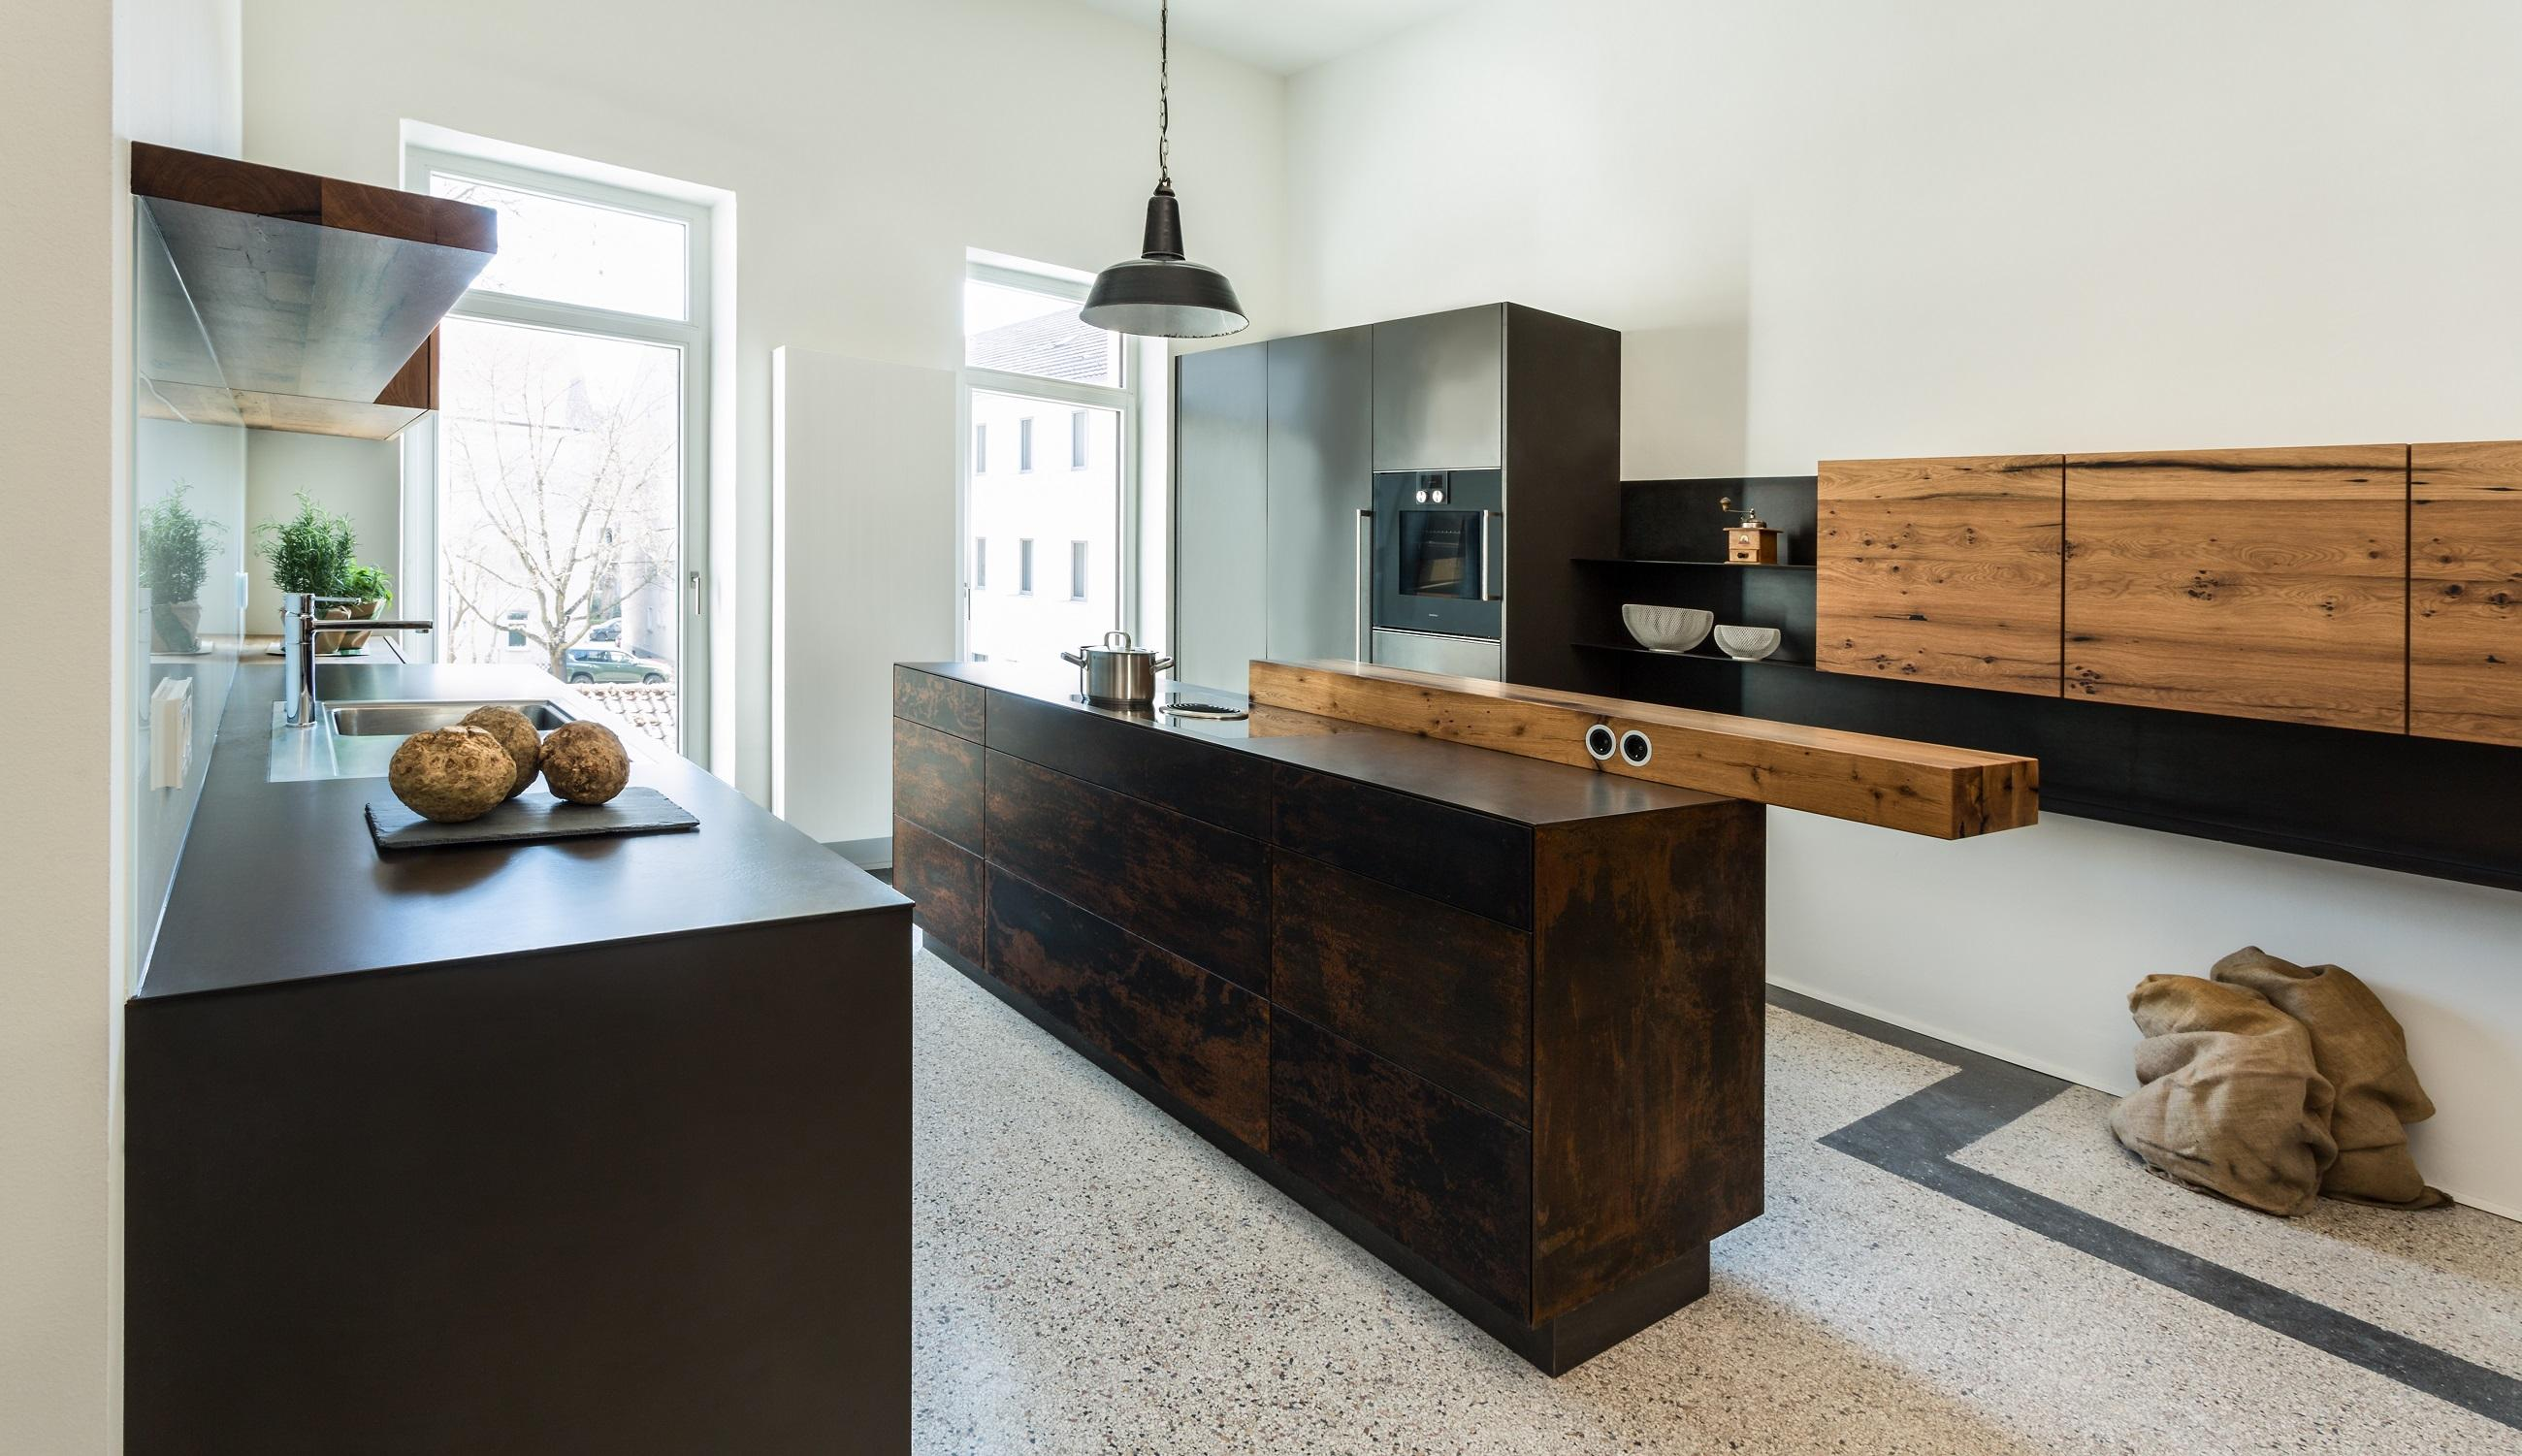 Steel meets wood - clear cubist design with warm accents